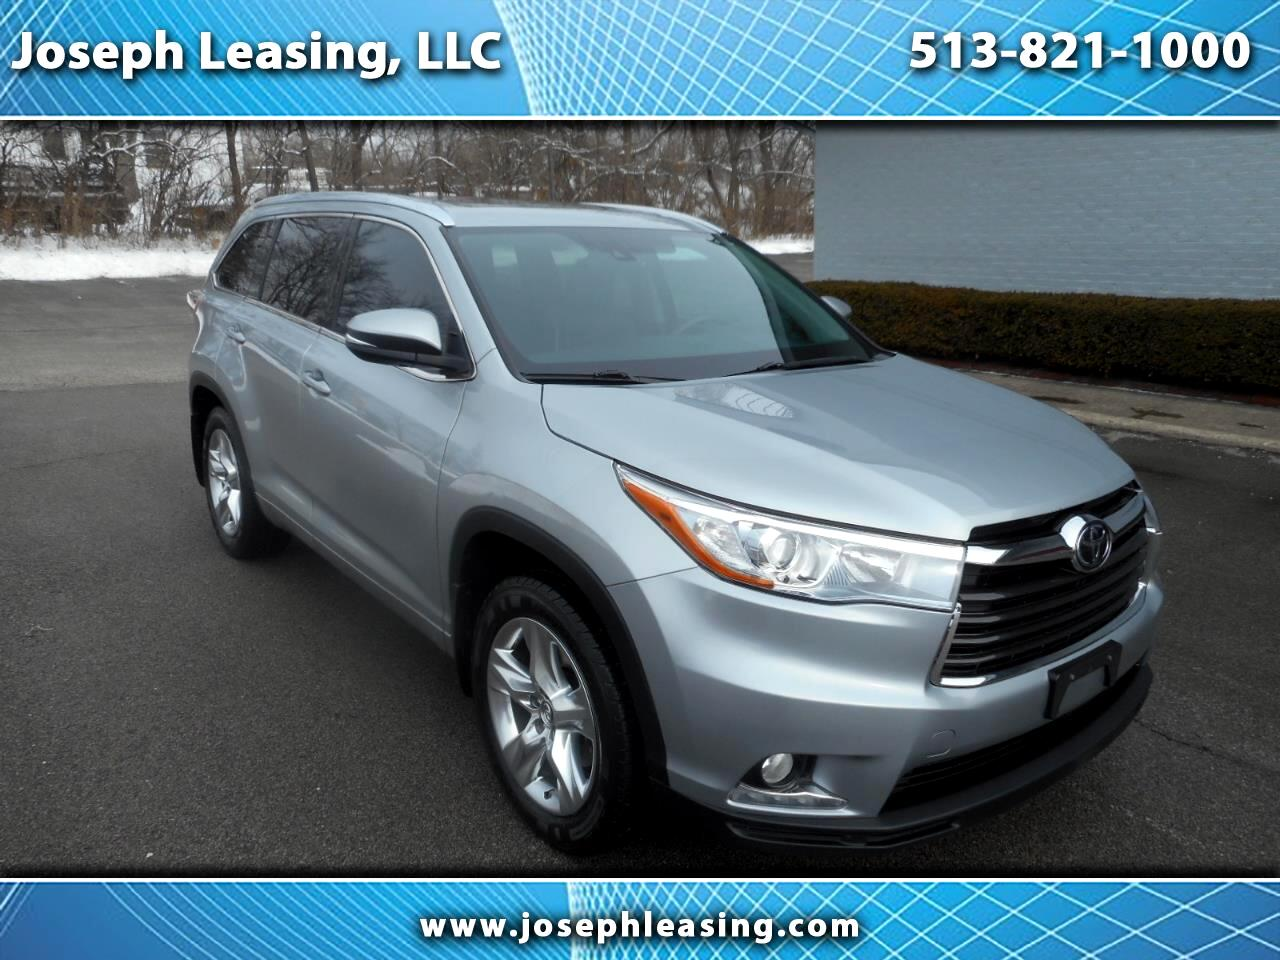 2016 Toyota Highlander AWD Limited Platinum